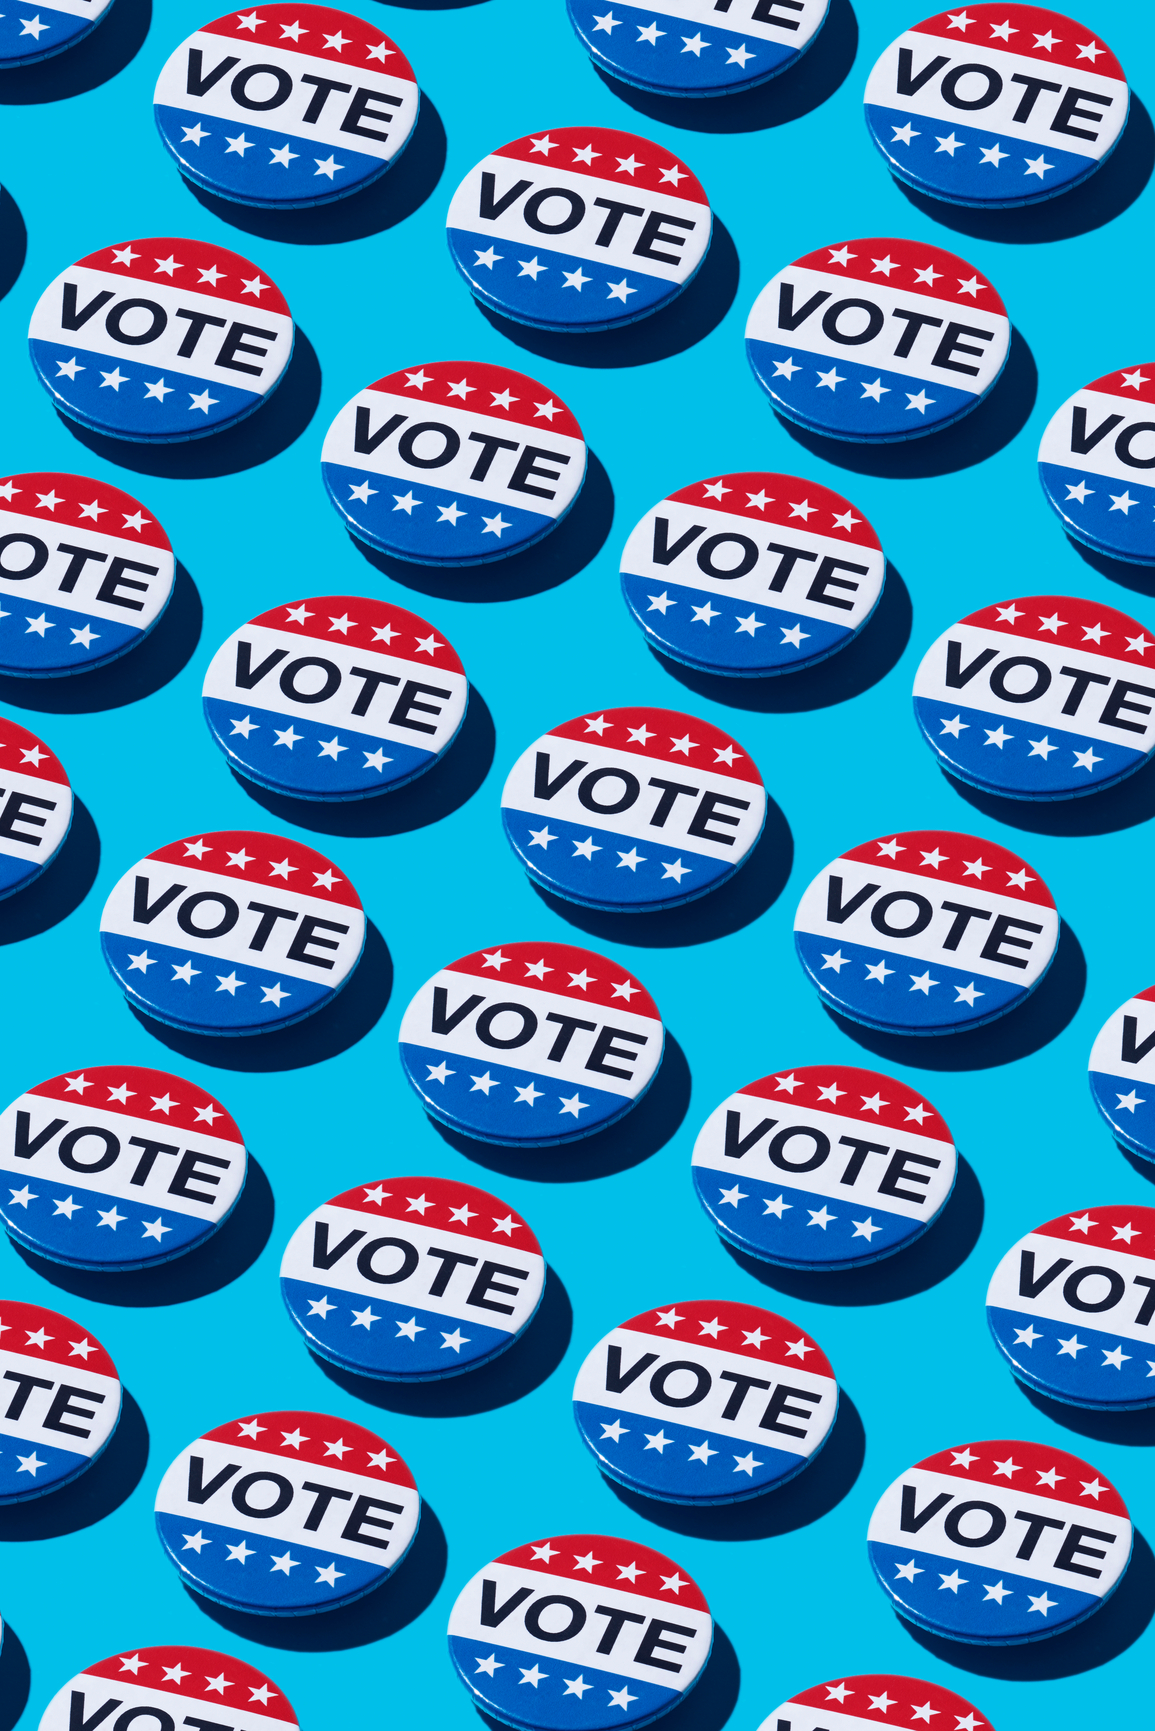 Red, white, and blue vote buttons on blue background